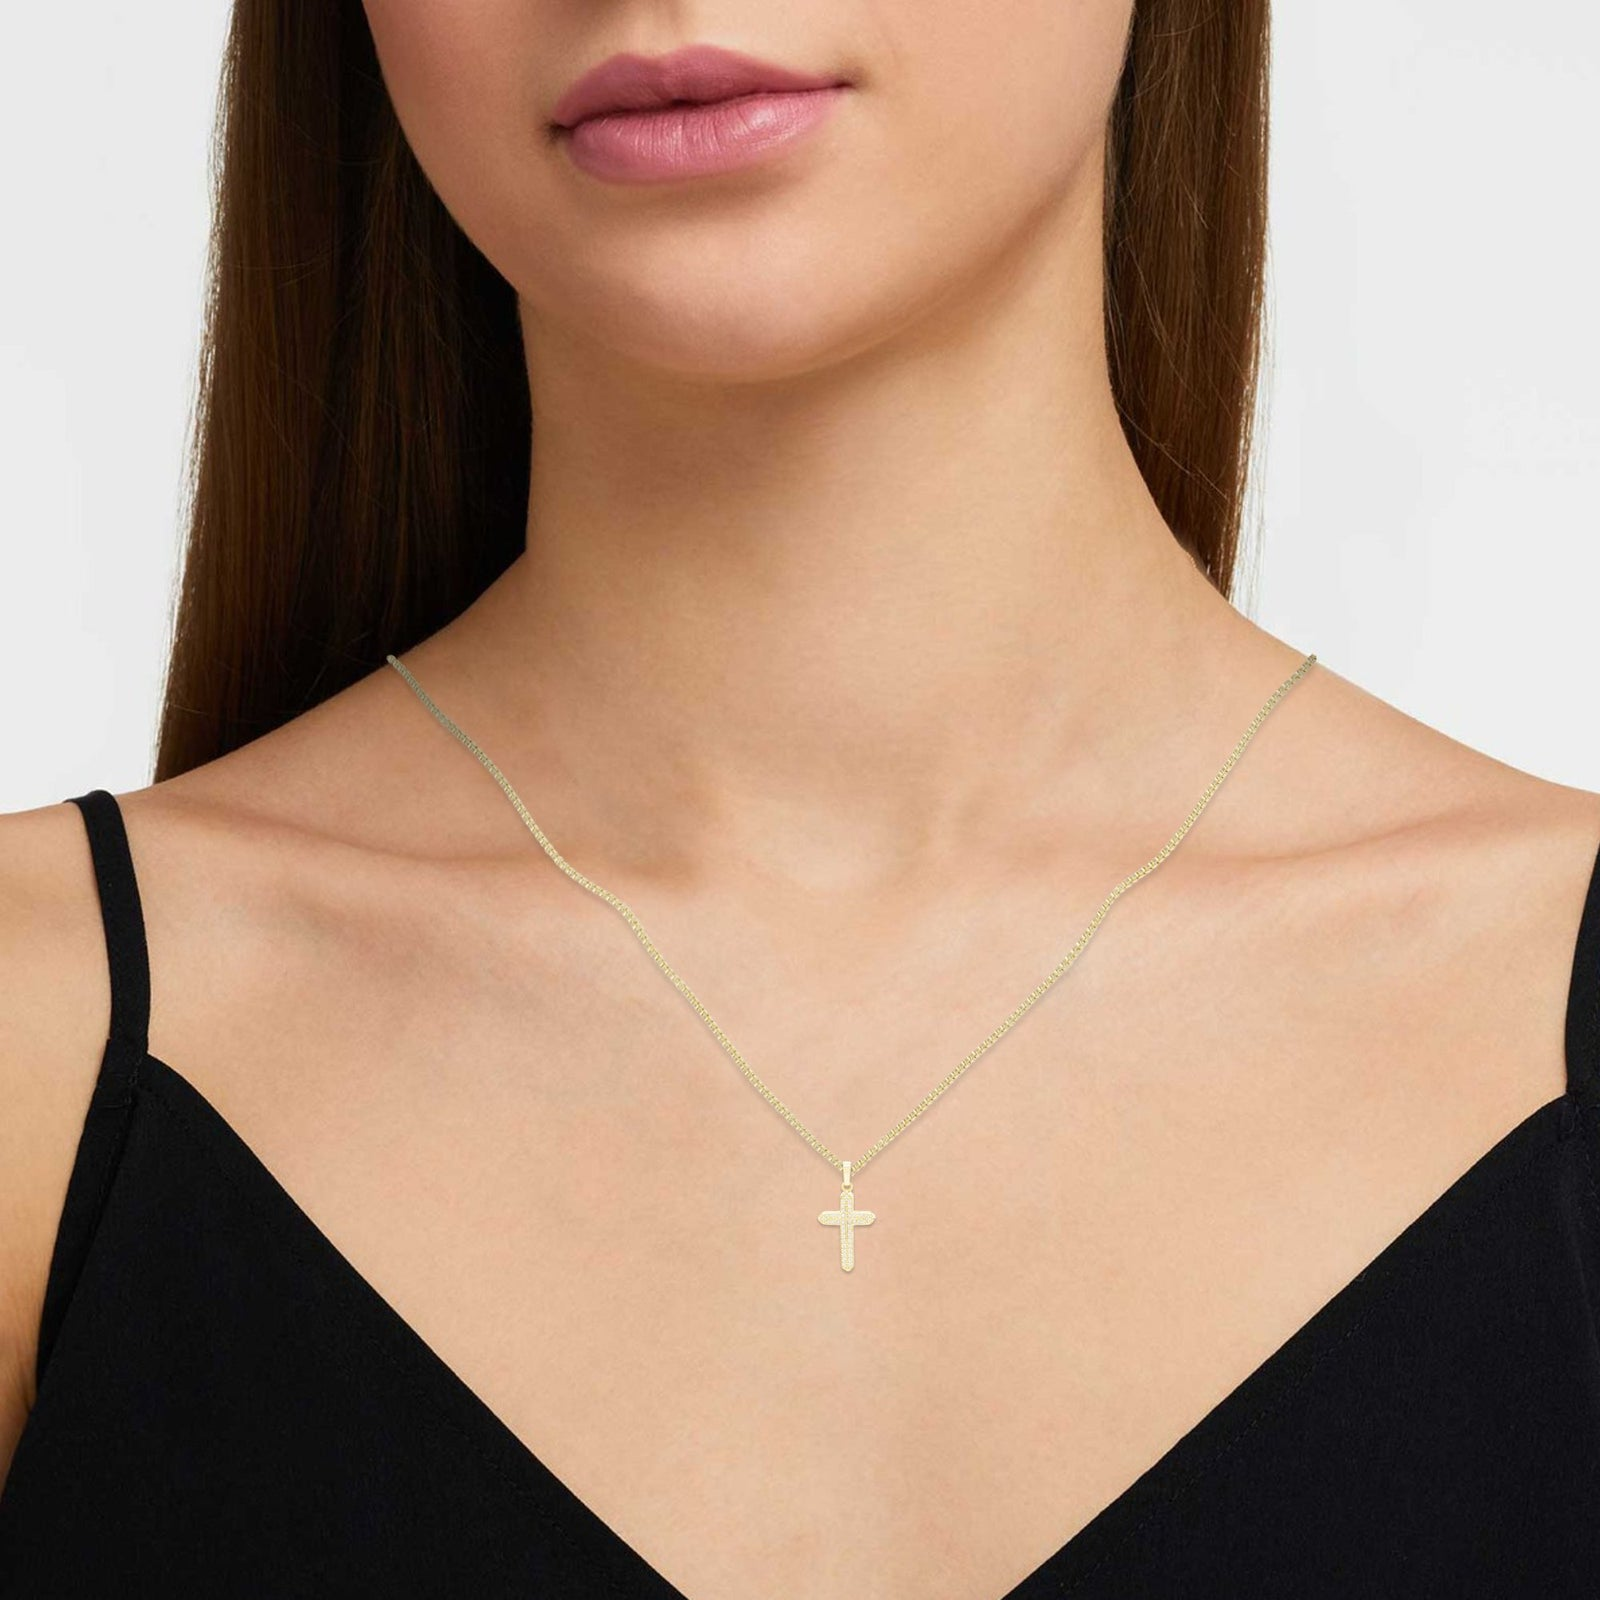 CZ Stone Cross Cubic Zirconia Pendant With Necklace Set 14K Gold Filled